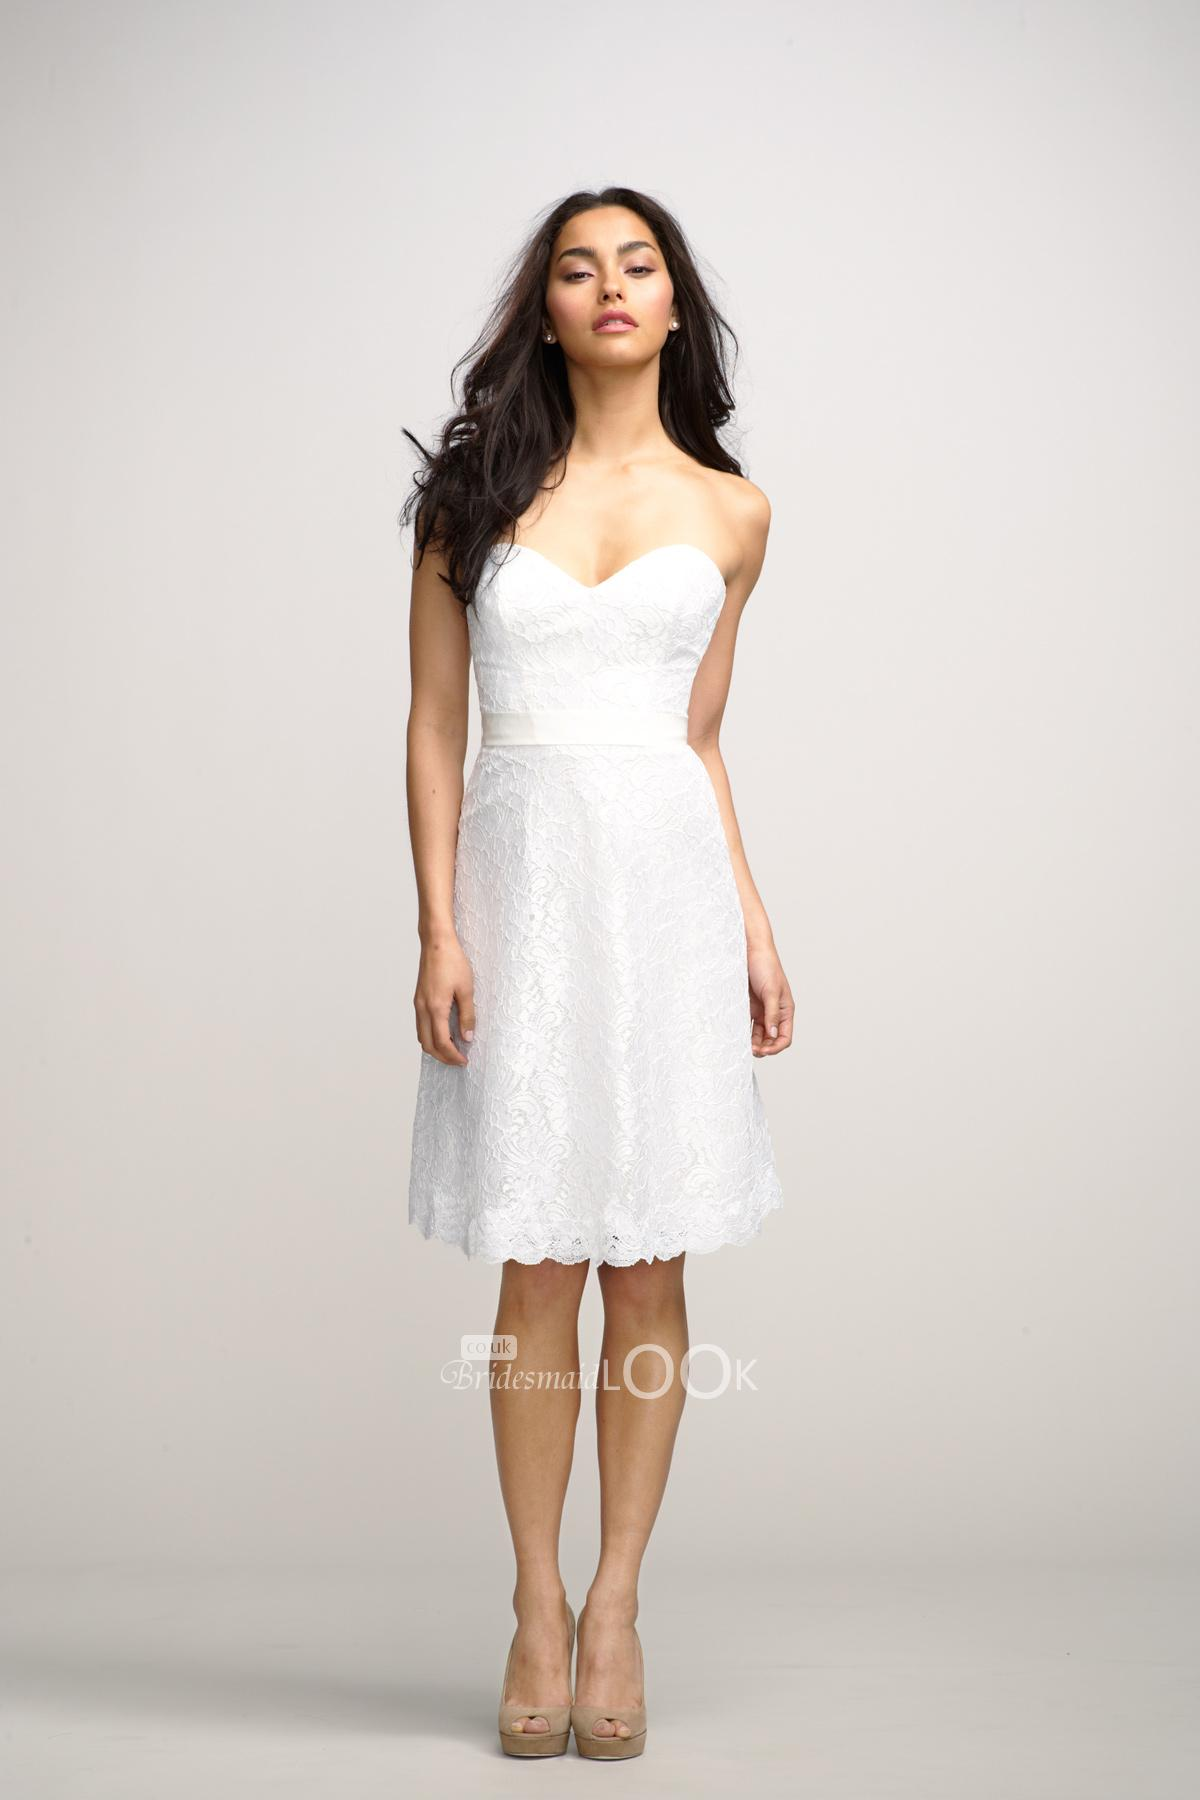 gorgeous Dresses: little white lace bridesmaid dress with sweetheart neckline picture id 35674 White Lace Dress Plus Size, White Lace Dress Short, White Lace Dress H&m ~ yopeey.com